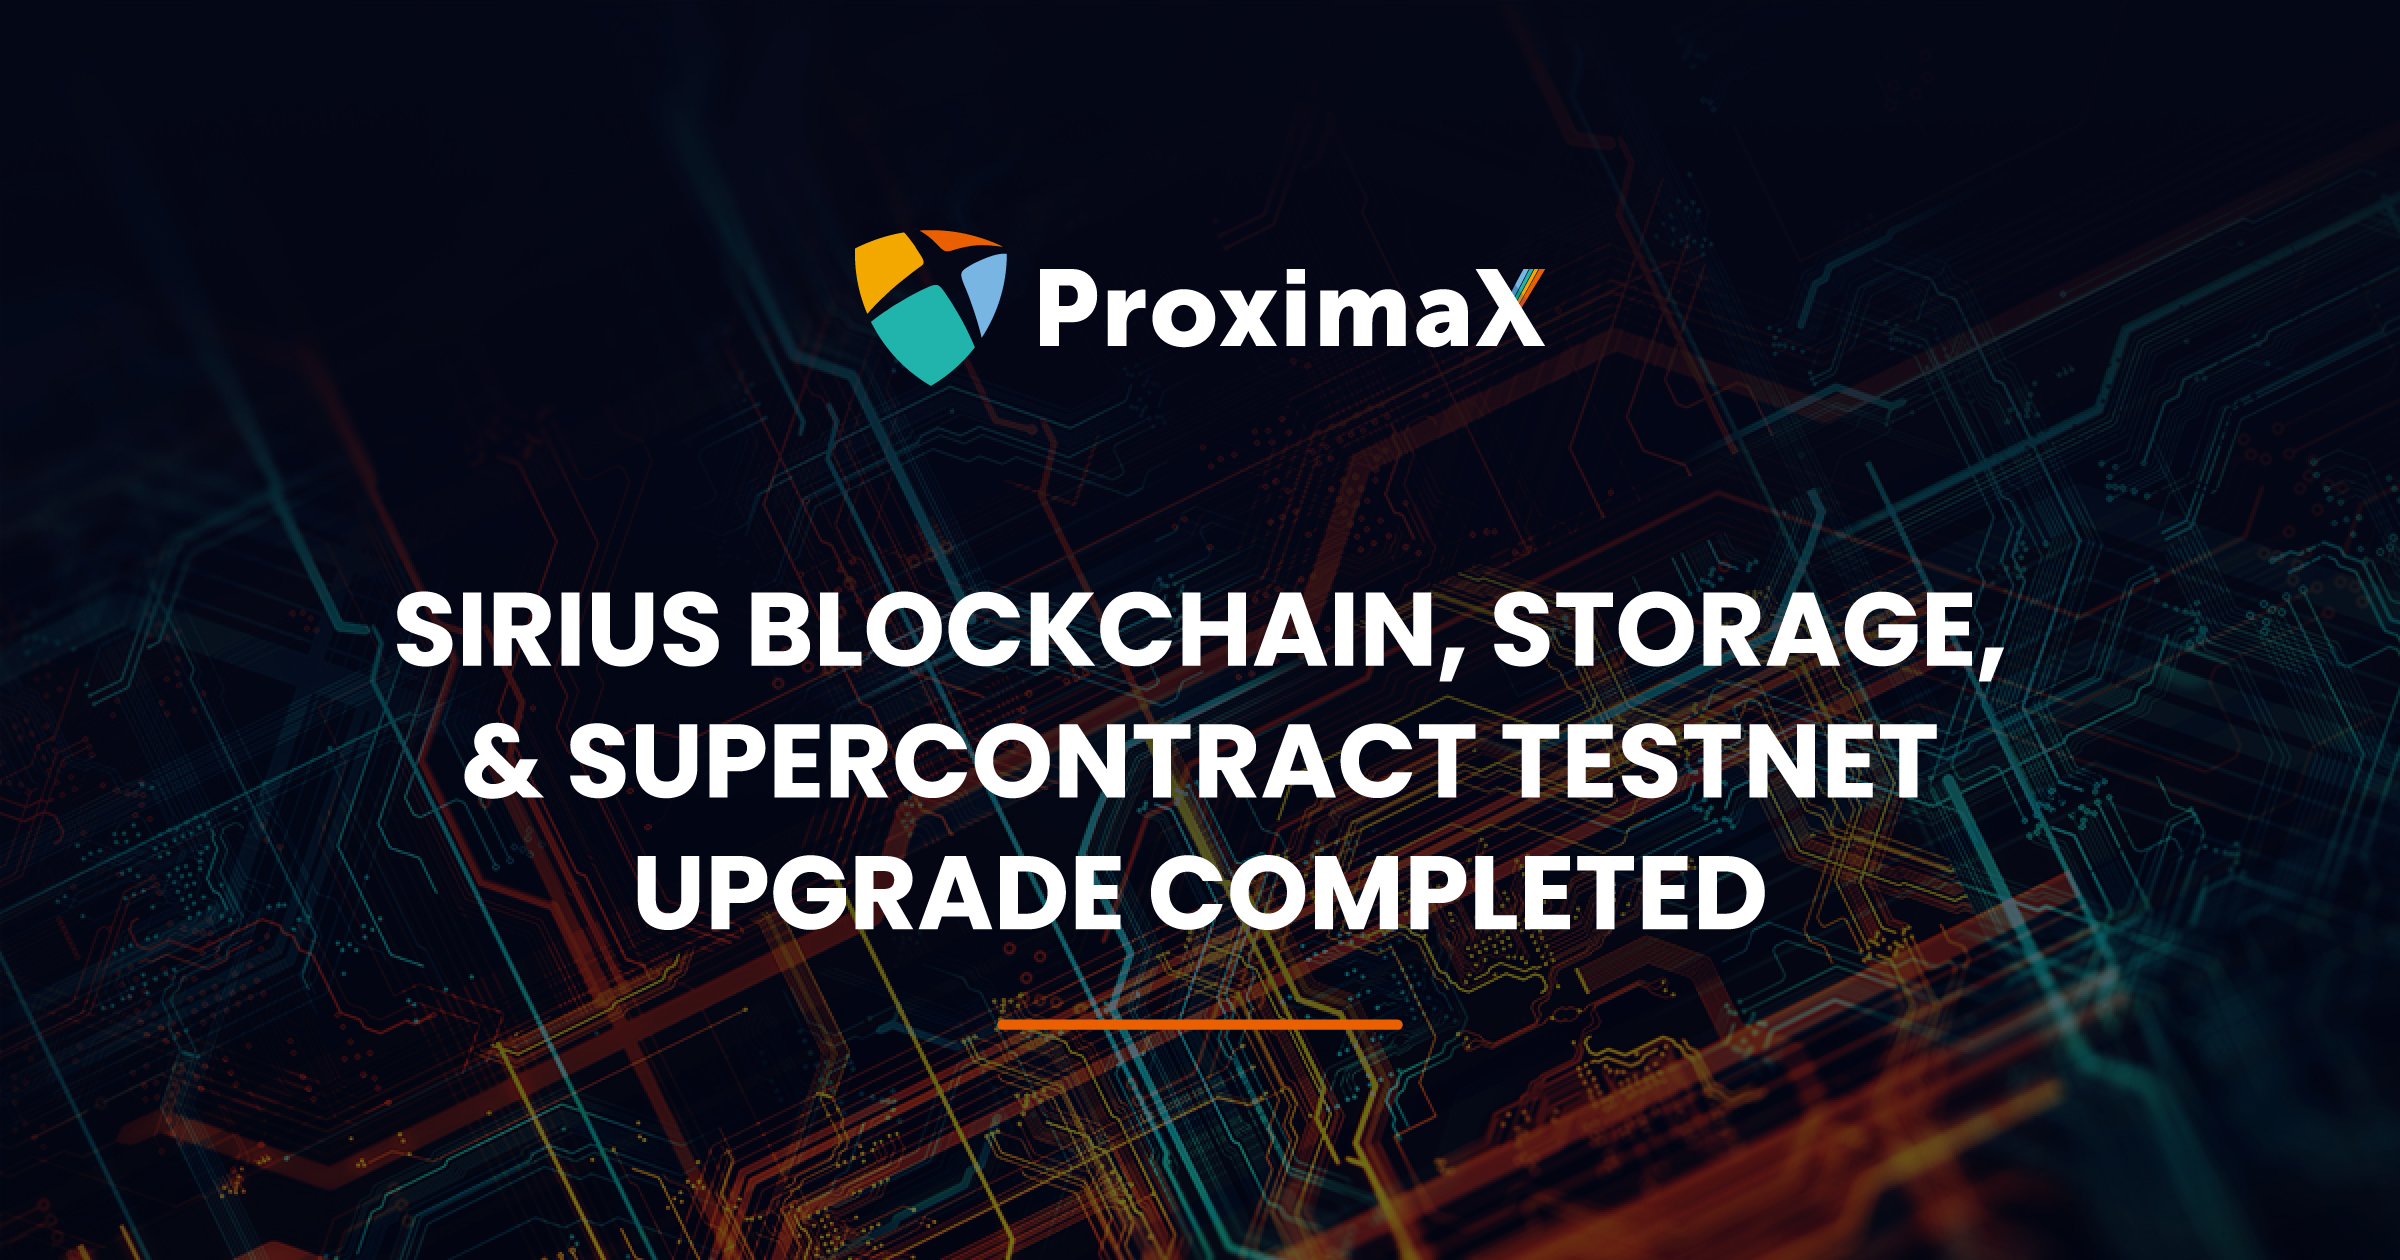 proximax sirius chain tech update